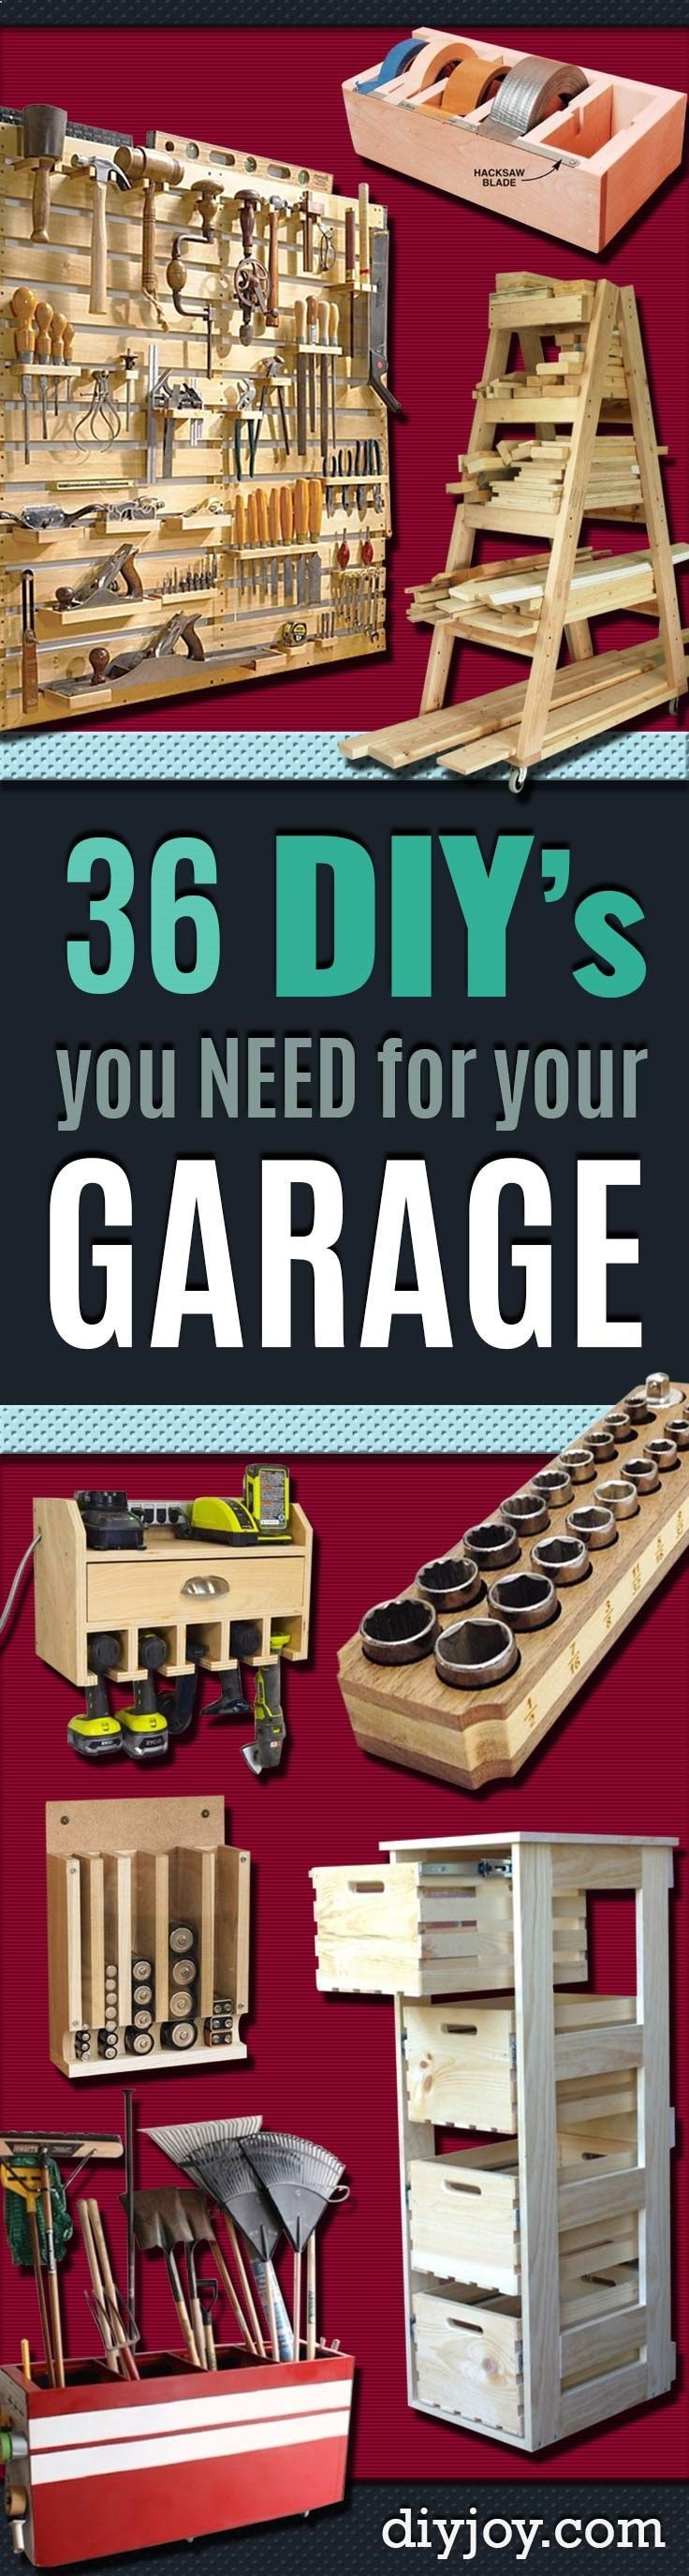 DIY Projects Your Garage Needs -Do It Yourself Garage Makeover Ideas Include Storage, Organization, Shelves, and Project Plans for Cool New Garage Decor diyjoy.com/... #garageorganizerideas